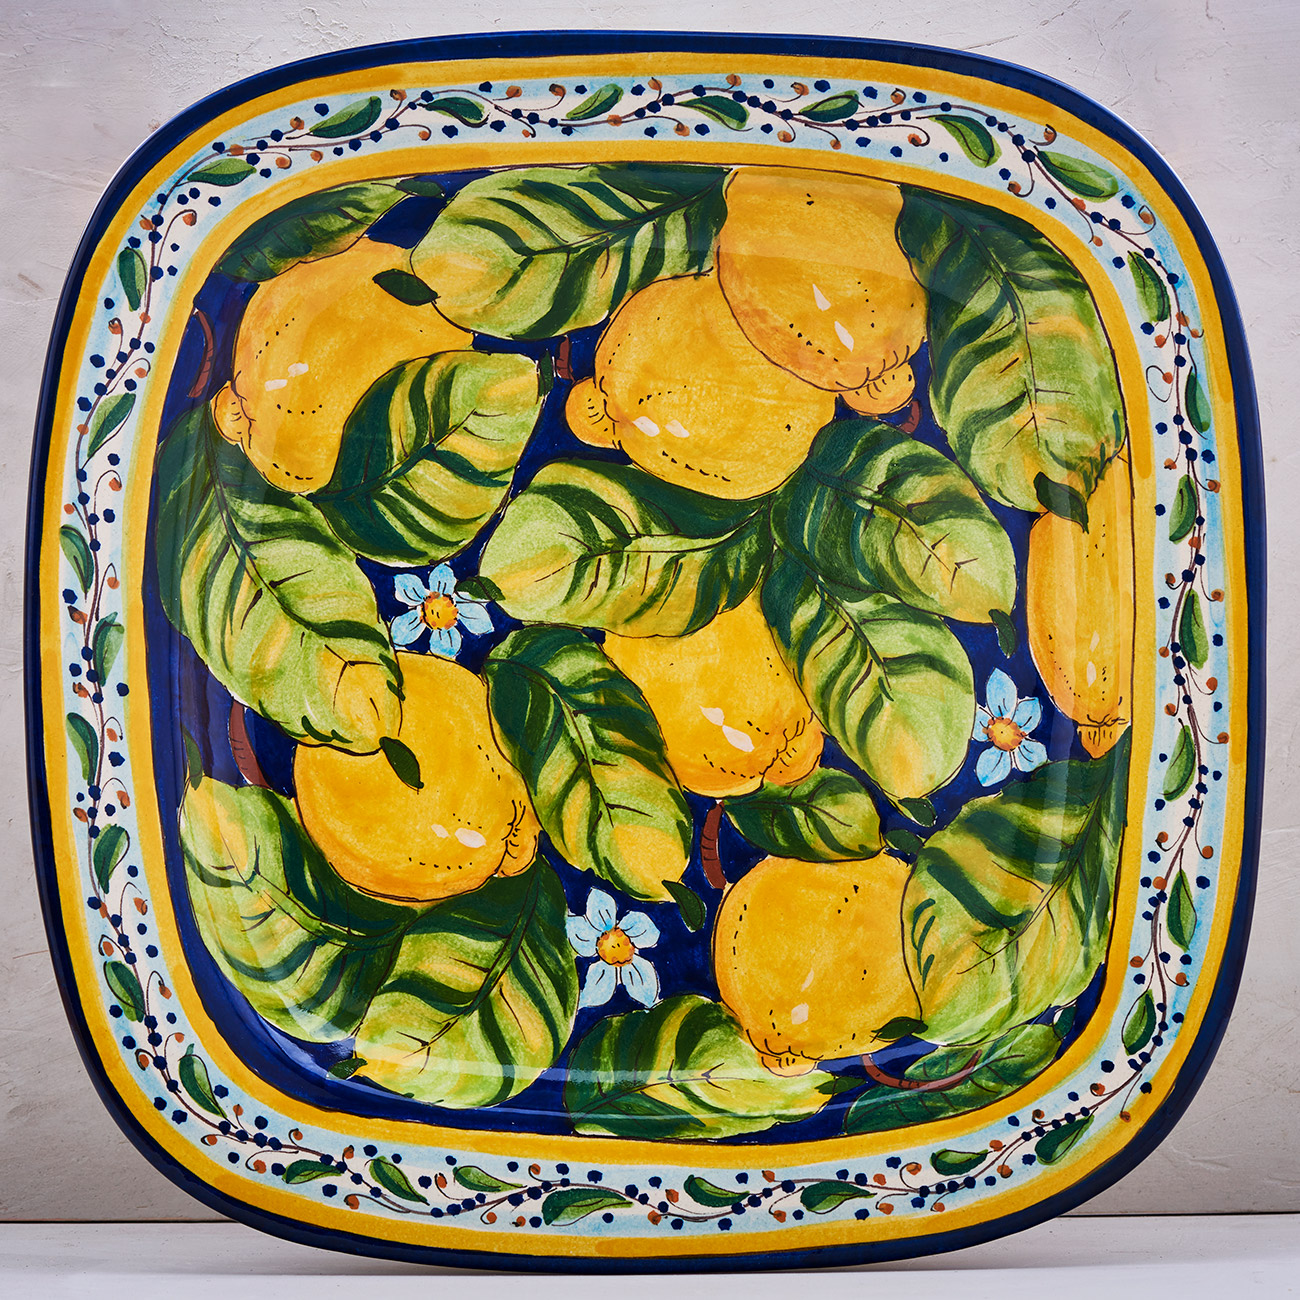 Lemon Tray Blue background - 40 x 40 cm 1